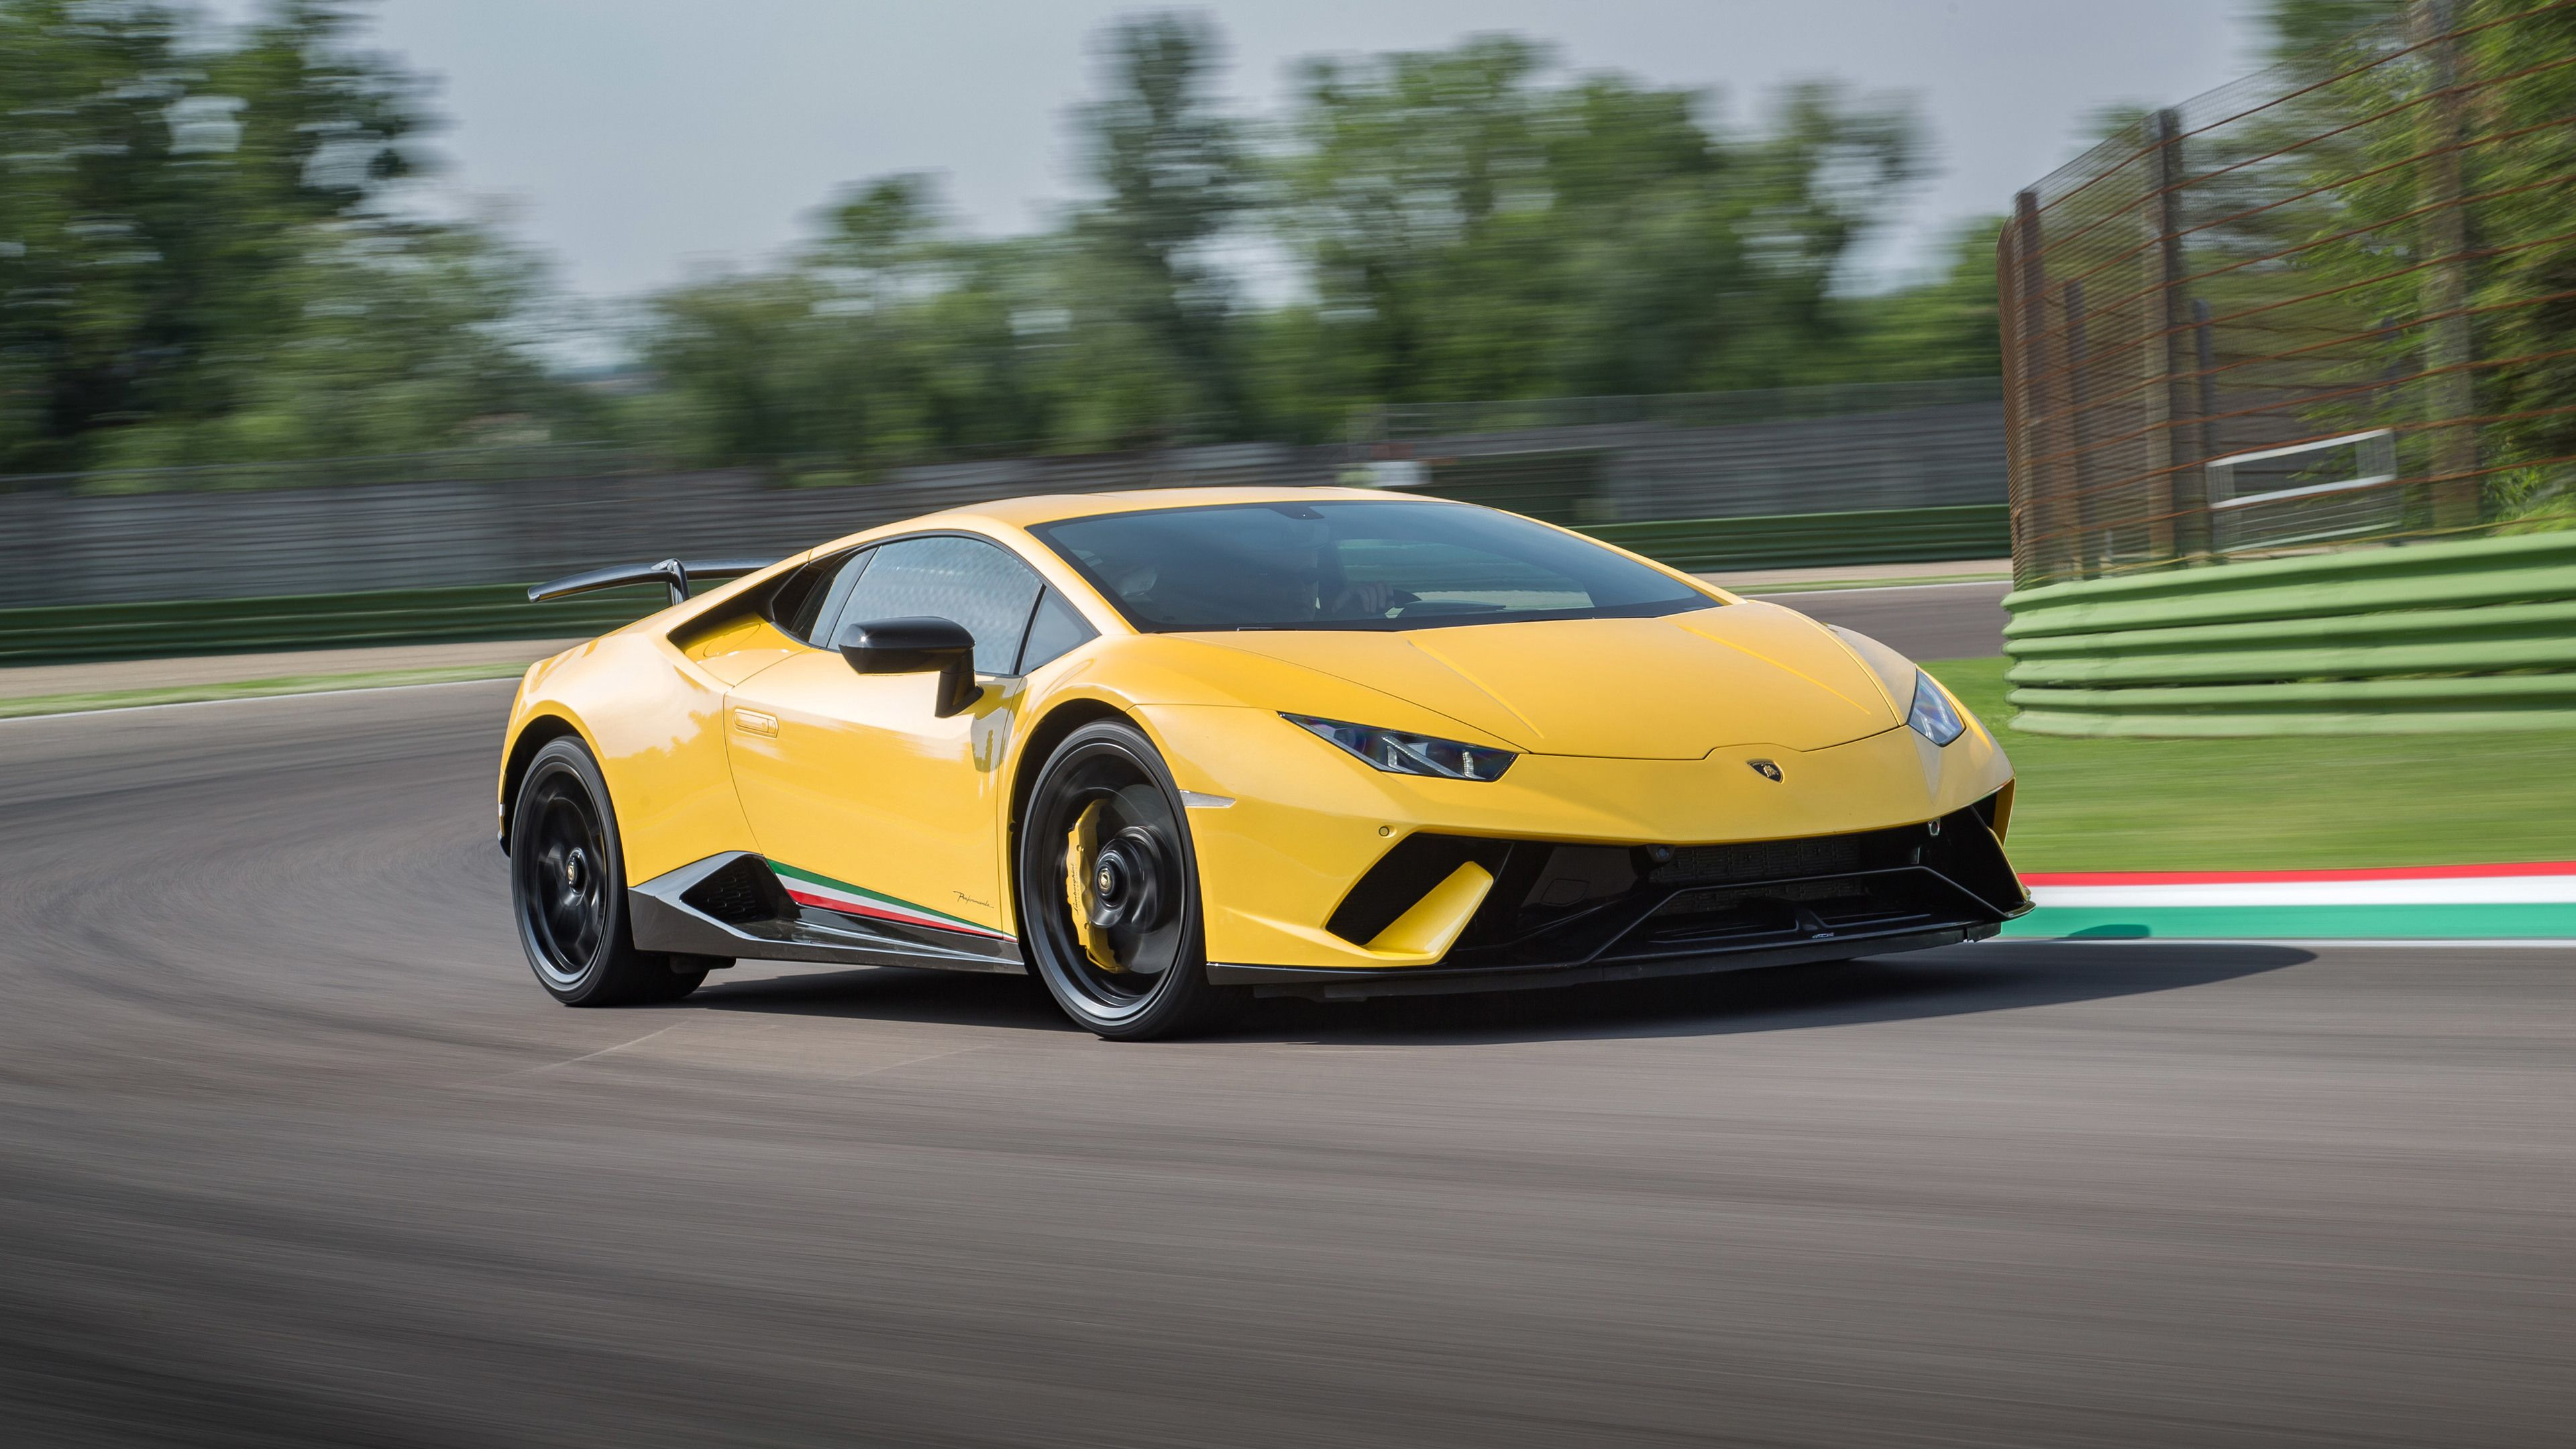 2018 Lamborghini Huracan Performante Lamborghini Wallpapers Lamborghini Huracan Wallpapers Lamborghini Huracan Lamborghini Huracan Car Wallpapers Lamborghini